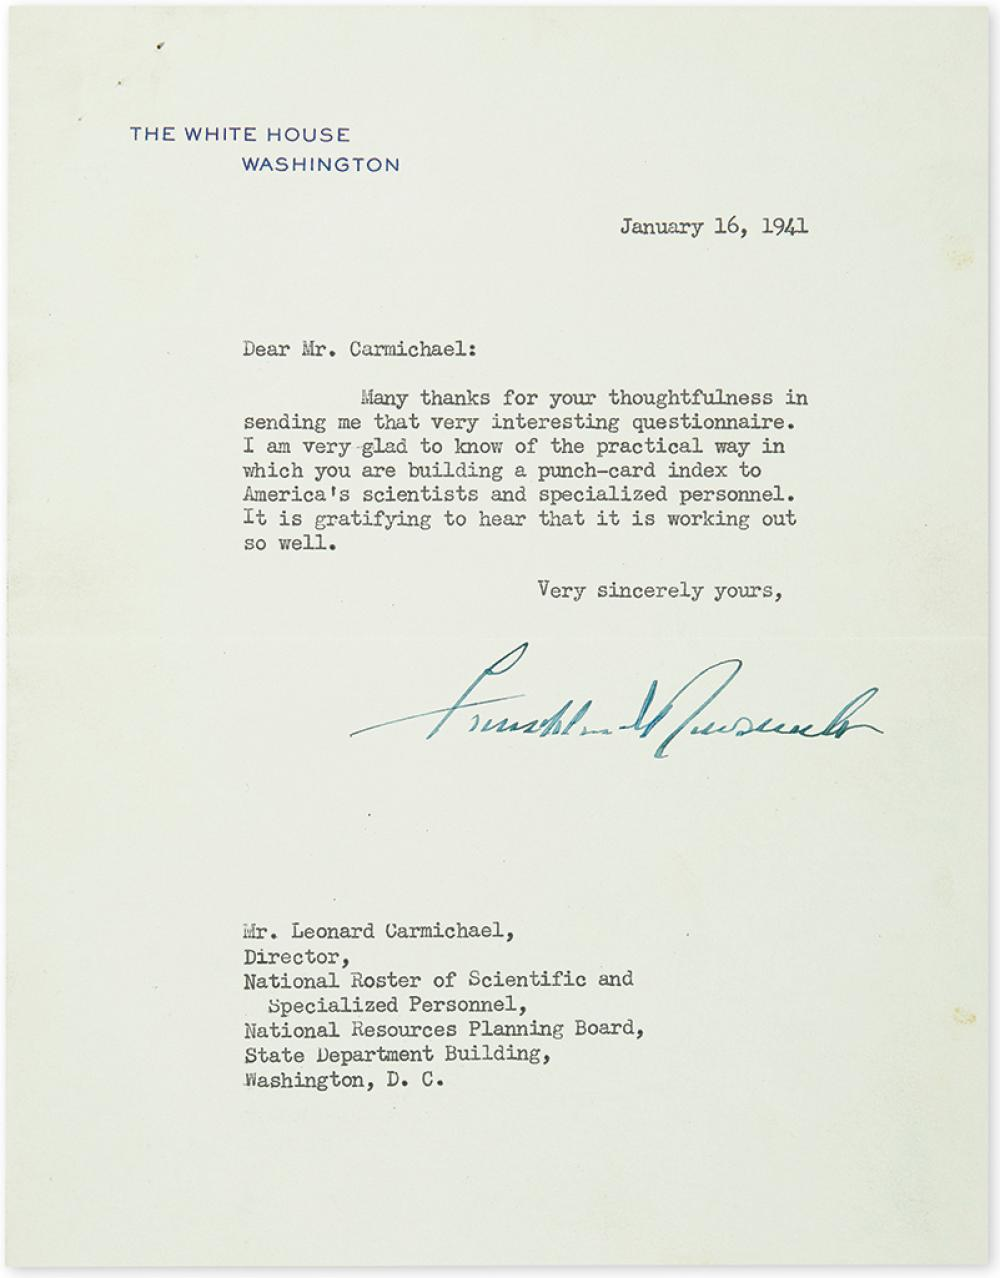 ROOSEVELT, FRANKLIN D. Typed Letter Signed, as President, to Director of the National Roster of Scientific and Specialized Personnel Le